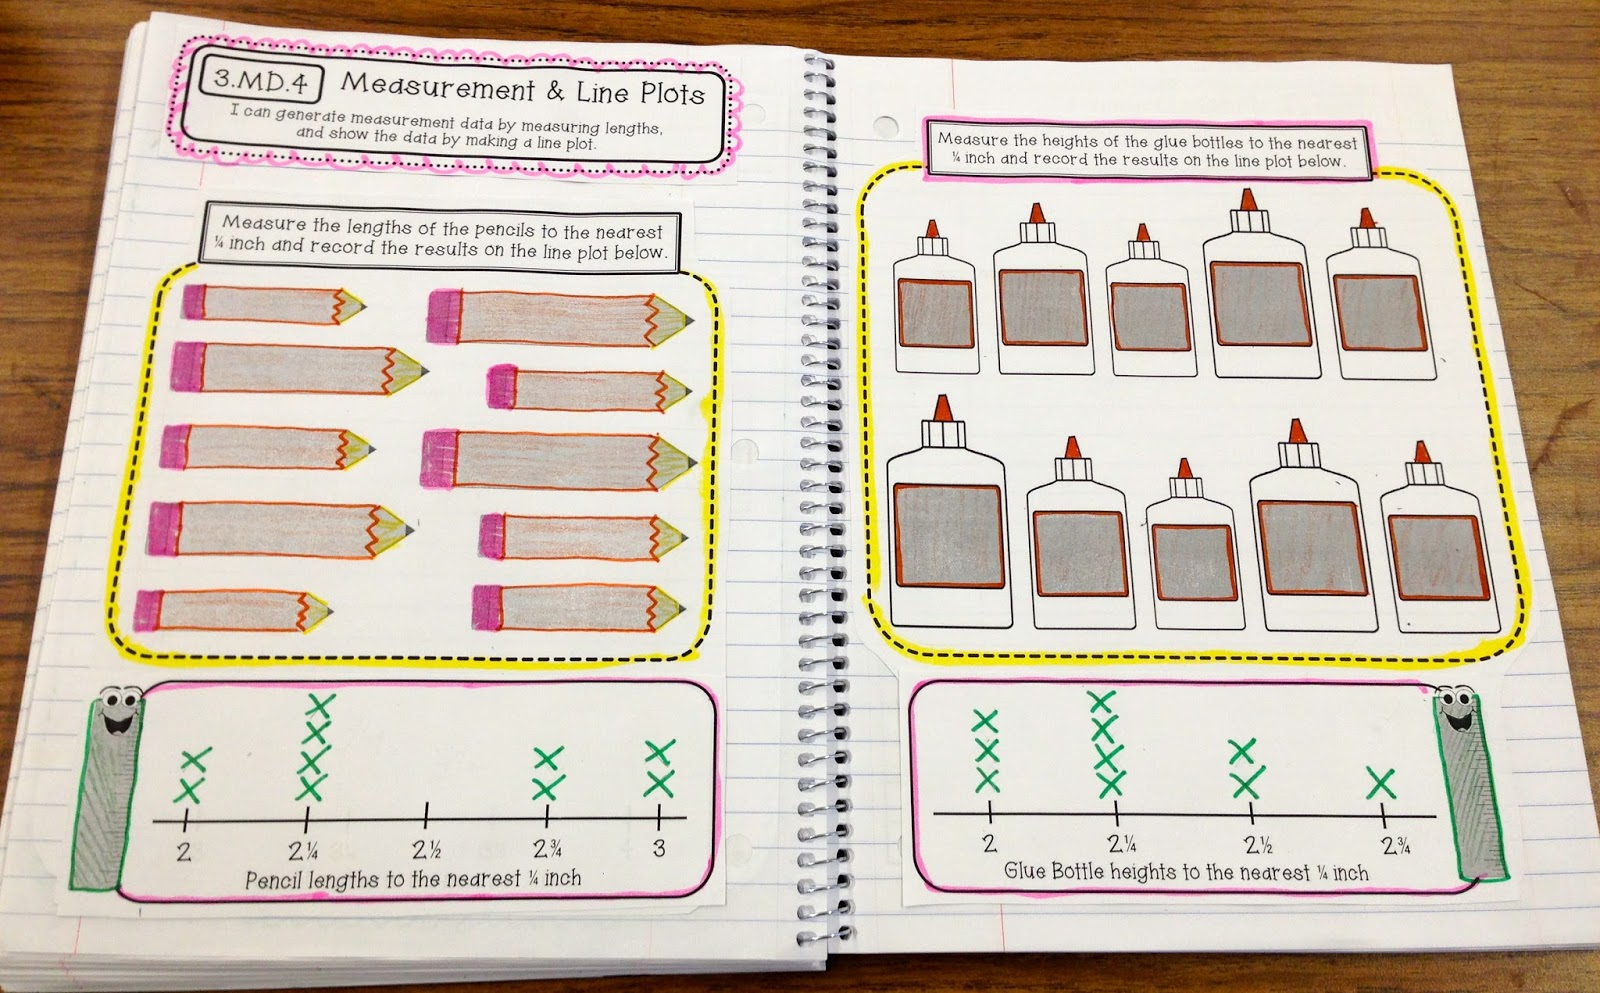 Worksheet Interactive Line Plots 3rd grade interactive math notebook final edition create measurement and line plots 3 md 4